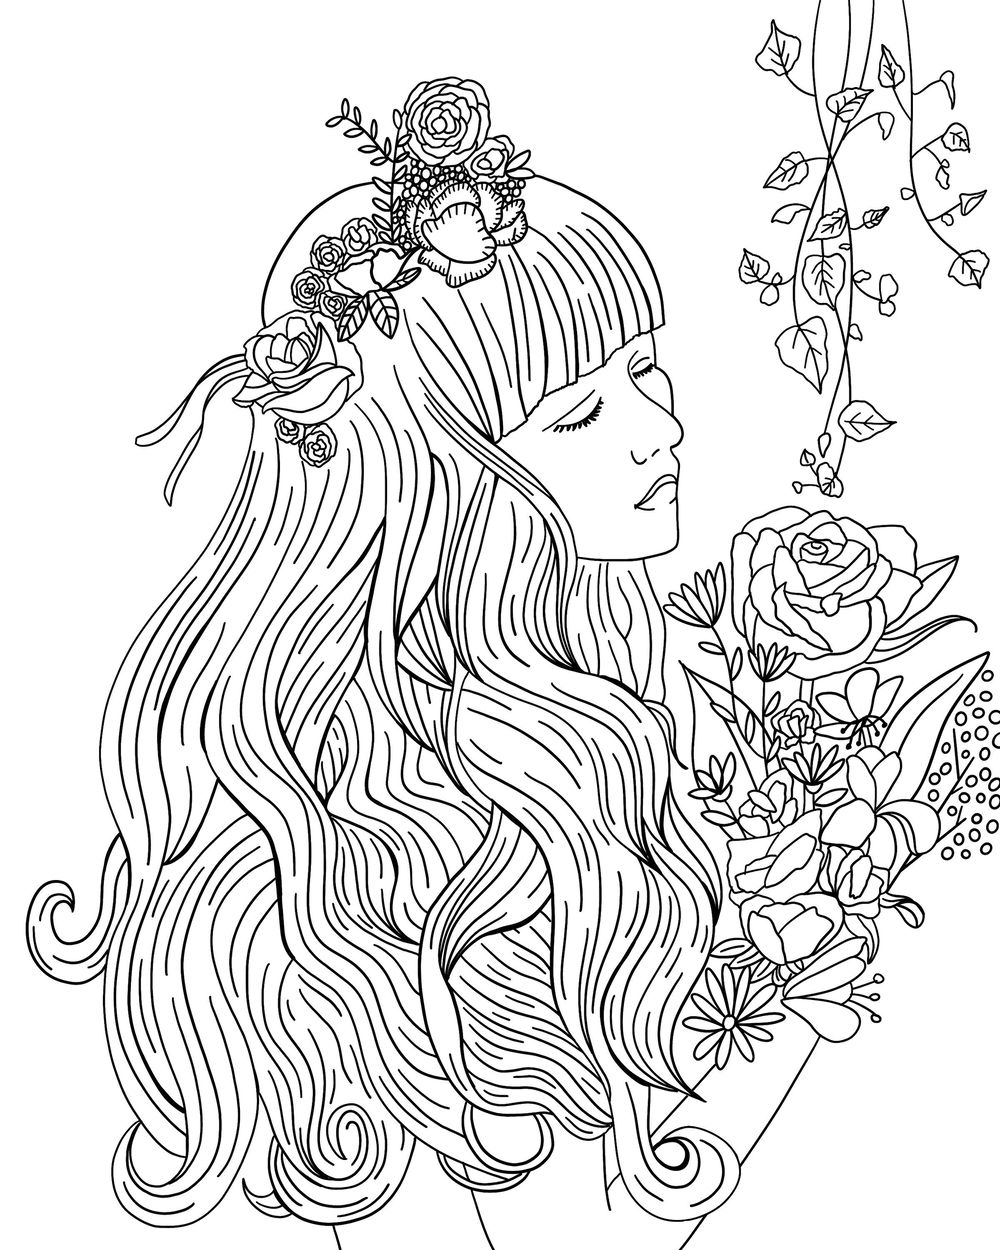 Botanical Coloring Book - image 1 - student project